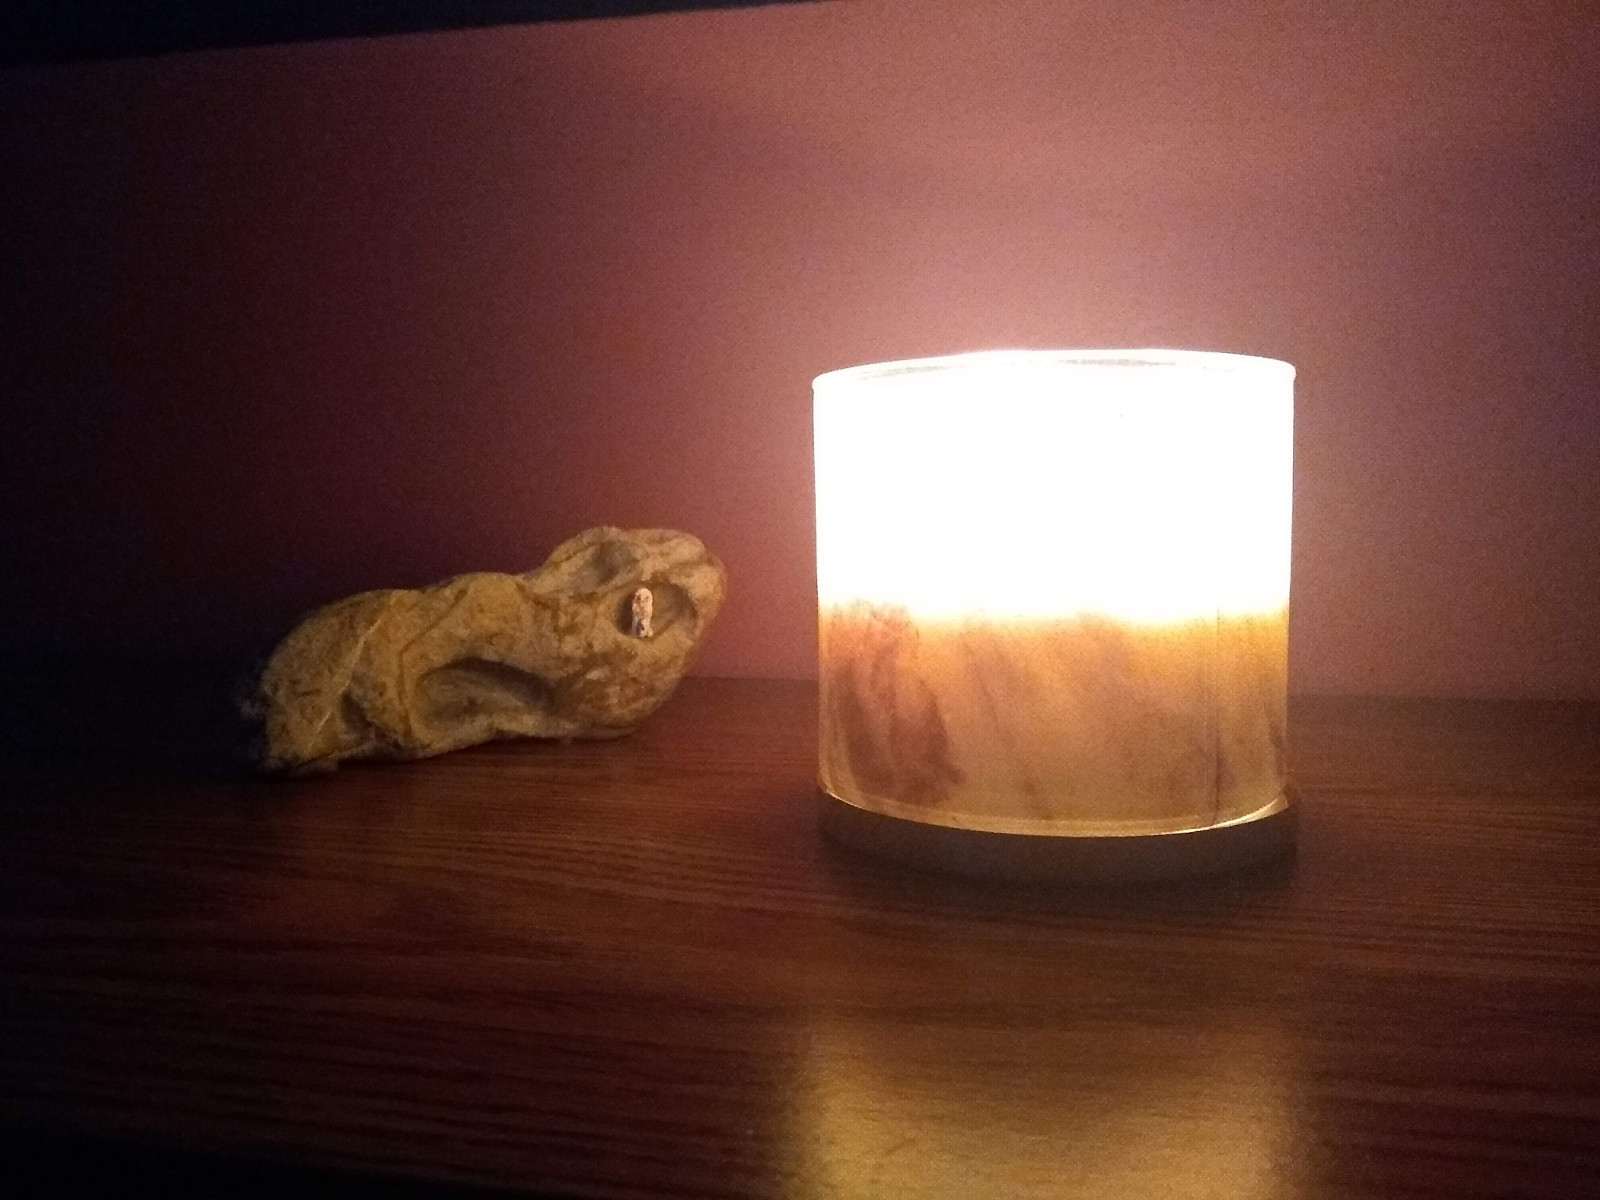 a decorated rock and a lit candle upon a wooden table